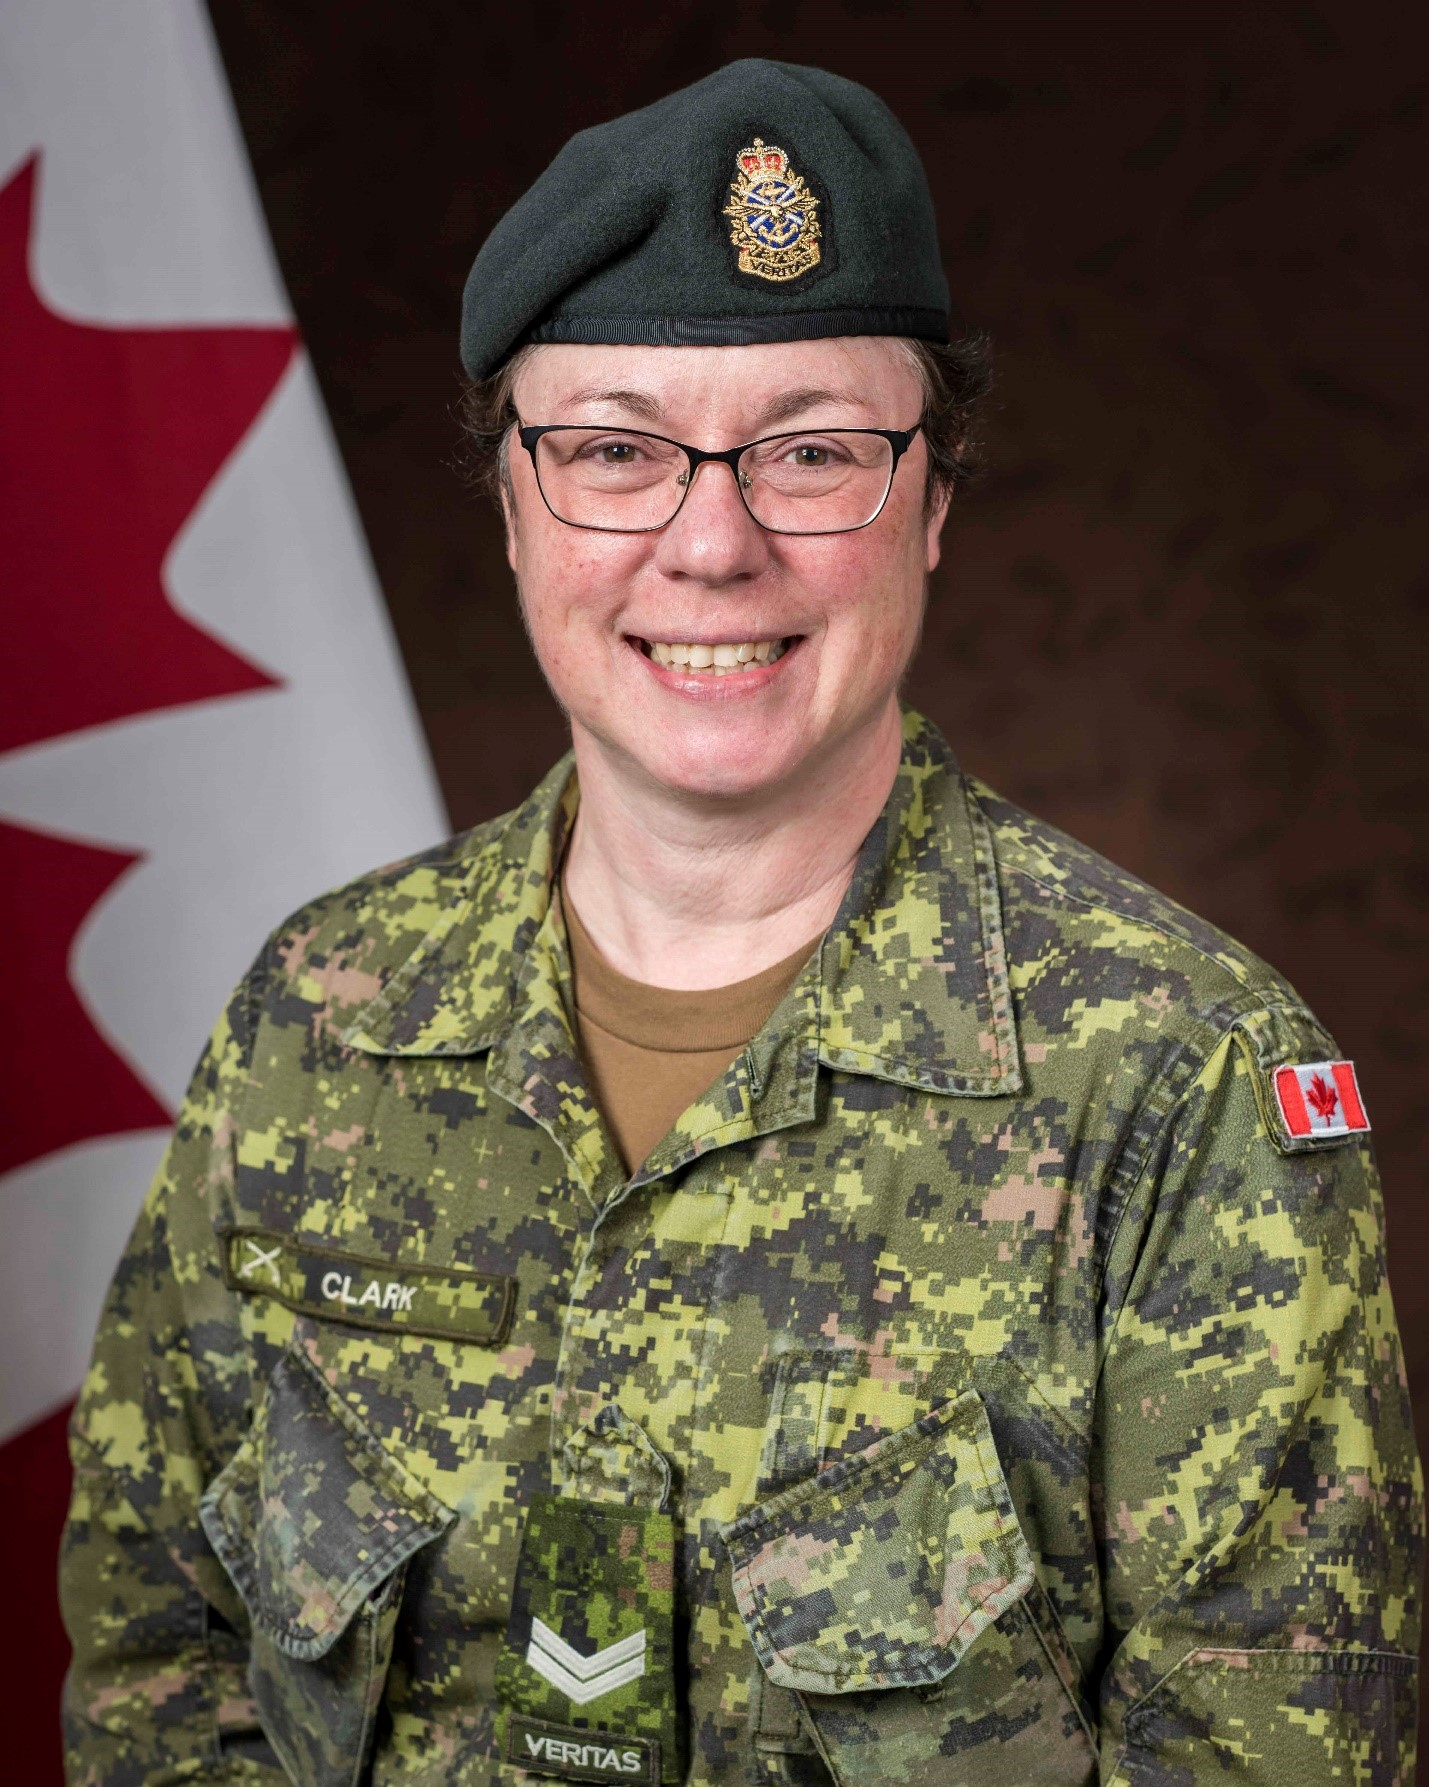 NDWCC Faces of CFB Halifax: Cpl Cheryl Clark